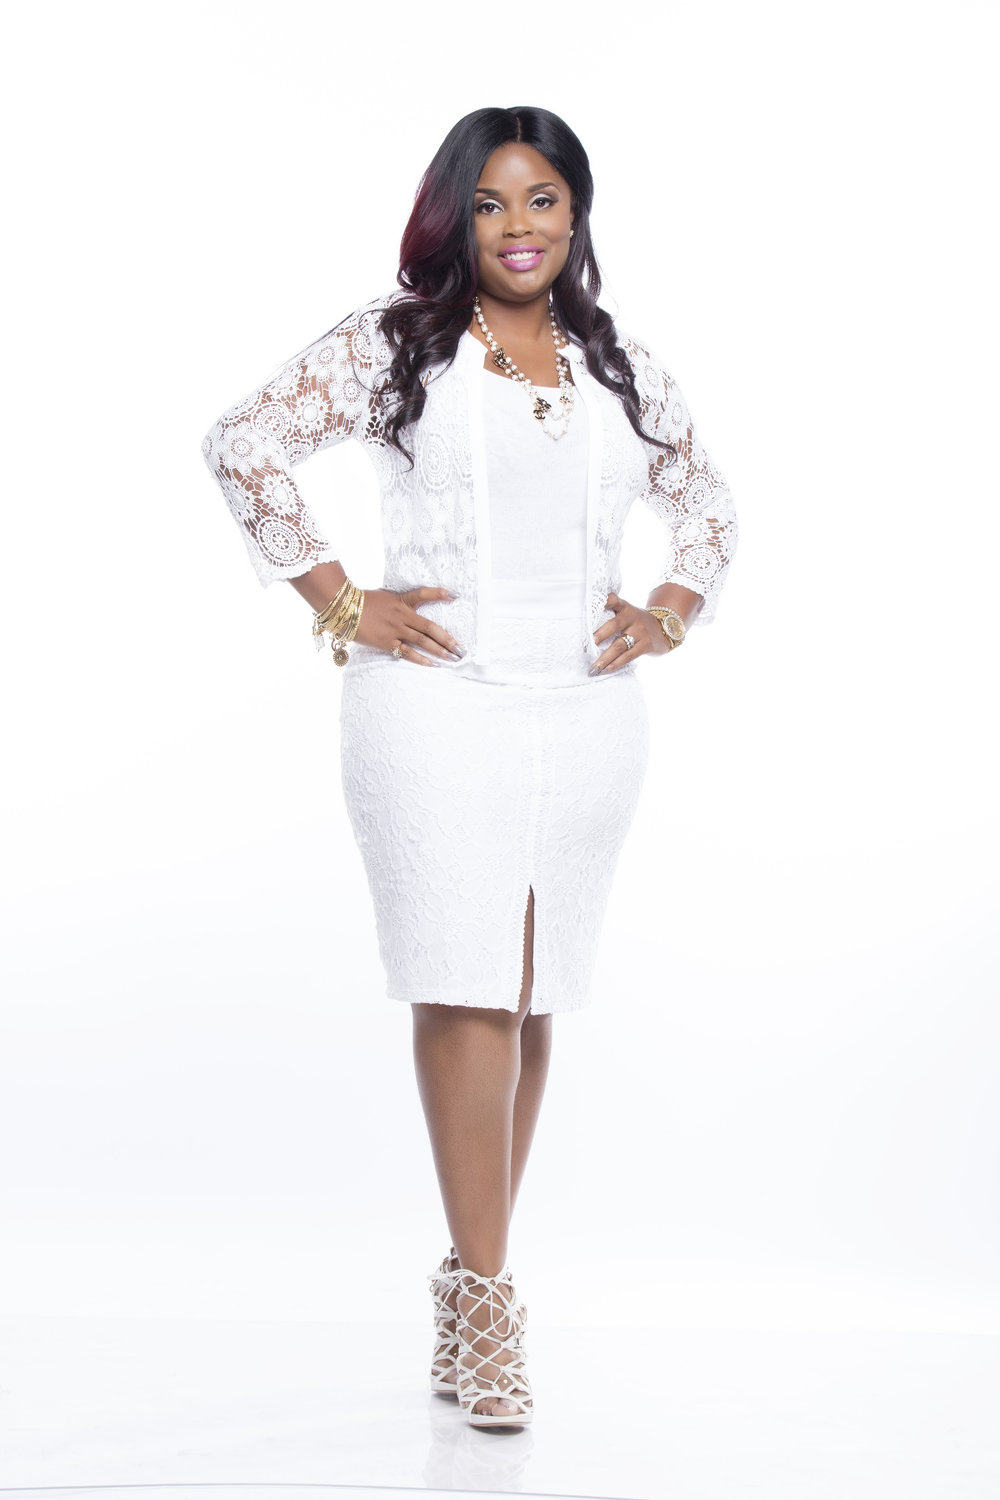 I'm Ebony - An entrepreneur, author, speaker, publicist & determined business woman focused on helping you become the person you most want to be.Ebony has dedicated her life to her passion of assisting aspiring entrepreneurs to become successful by living their truth. This is the premise of the programs, events and the epiConference®.